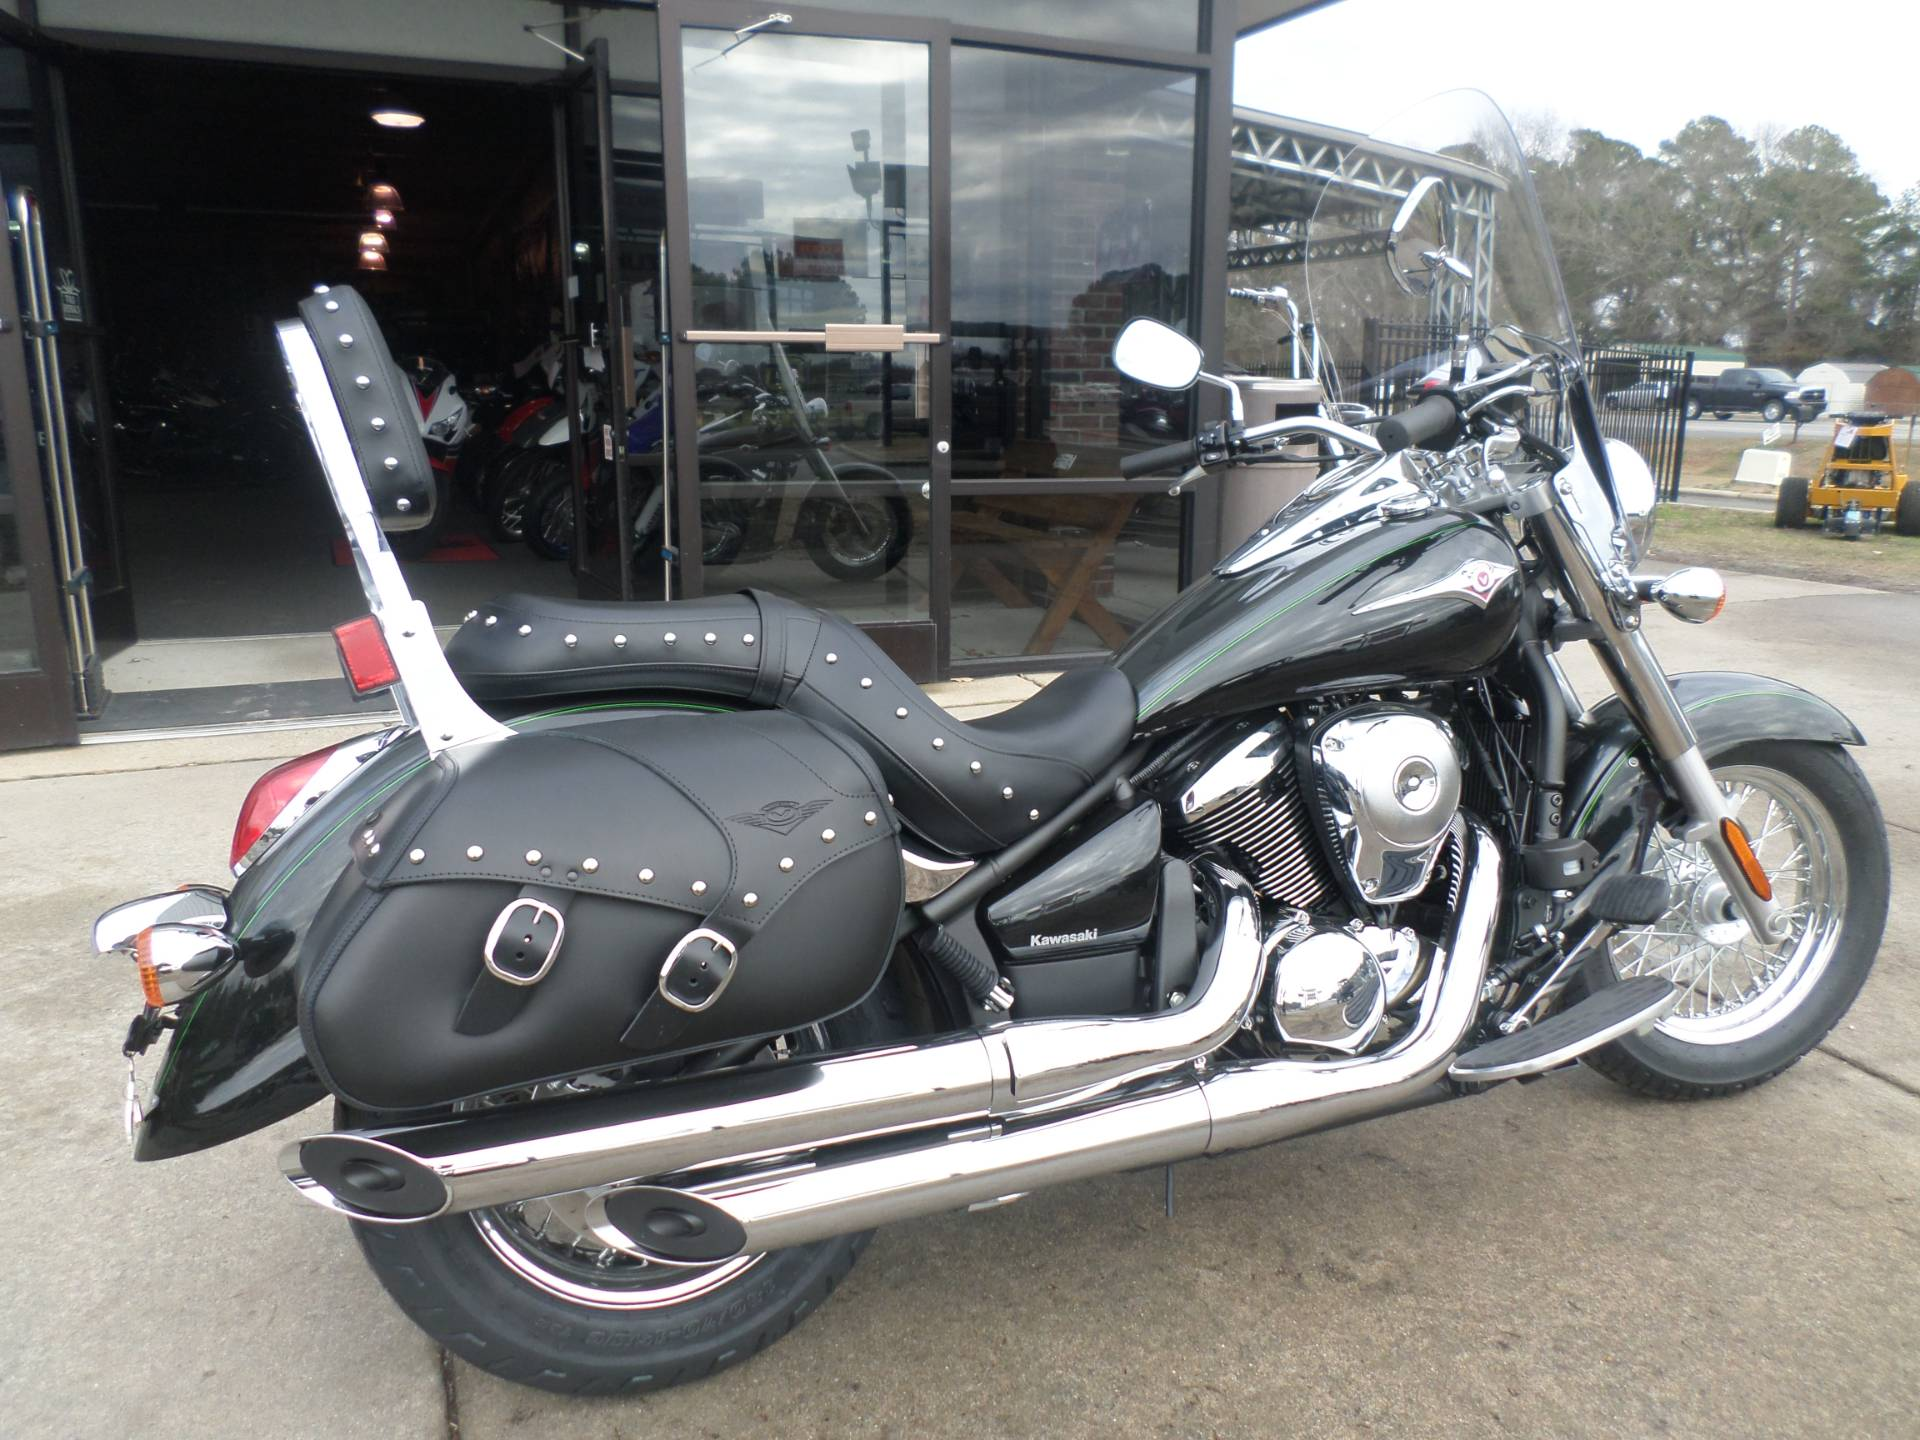 2017 Kawasaki Vulcan 900 Classic LT in Greenville, North Carolina